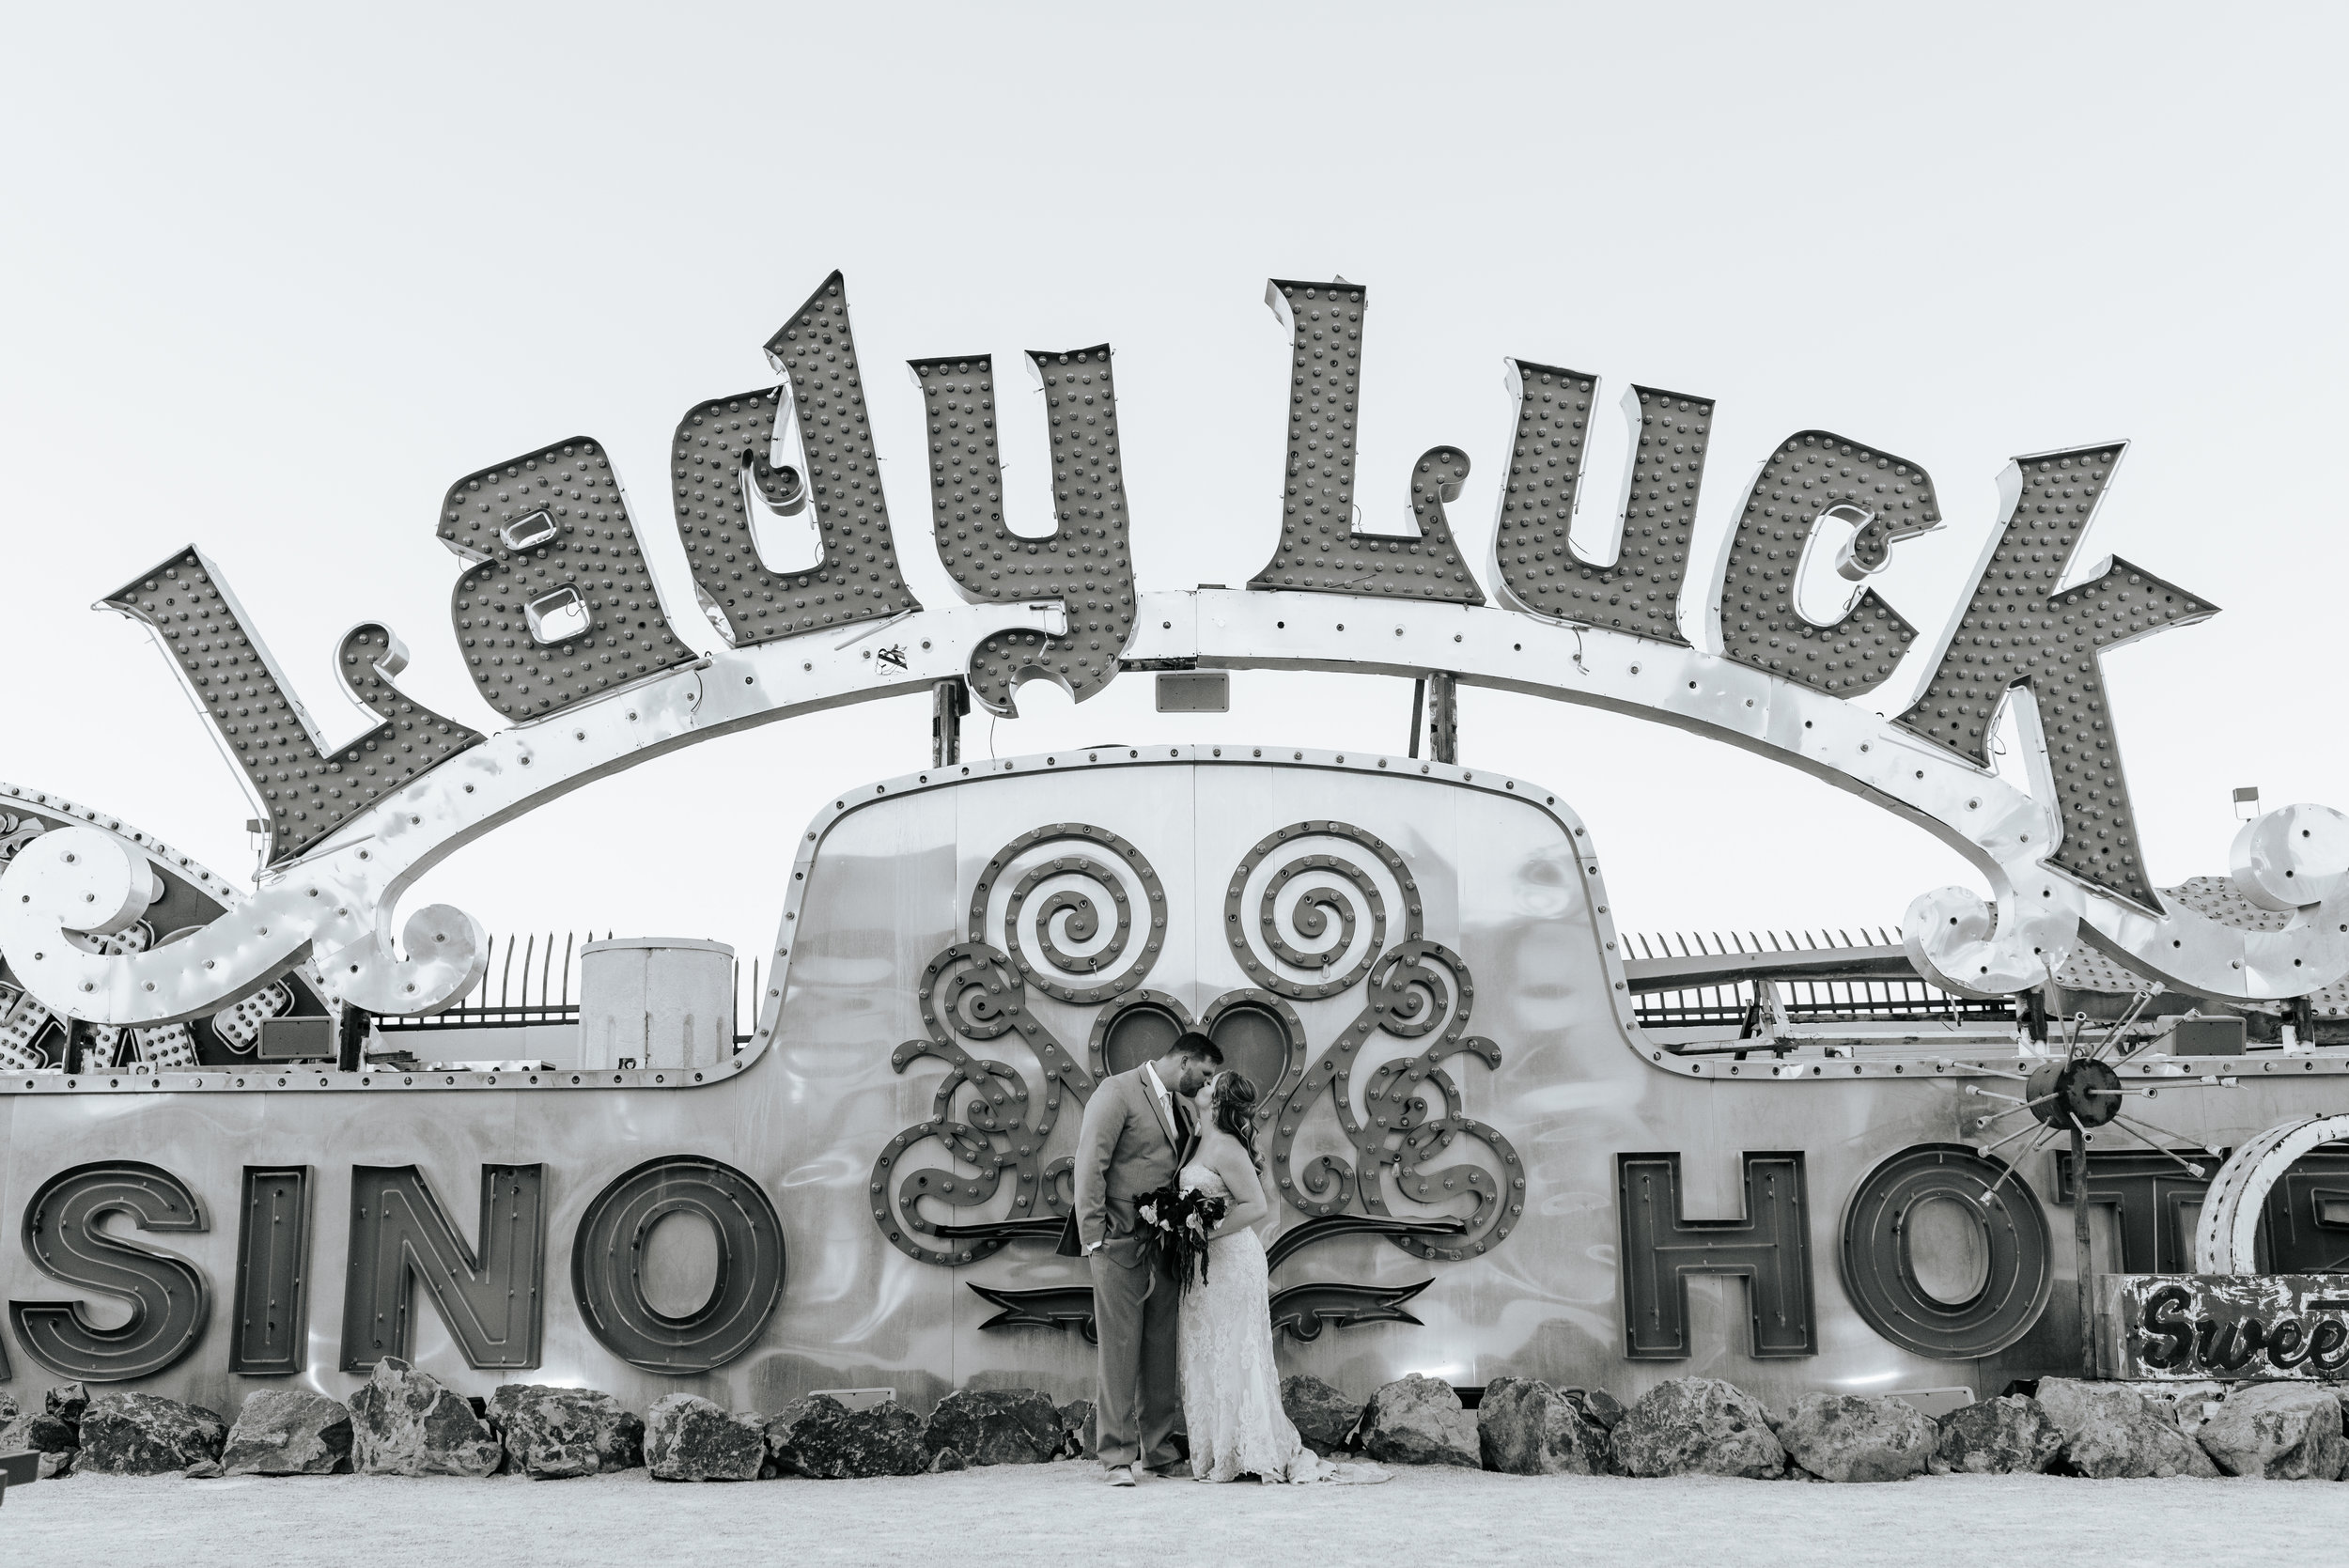 Neon-Museum-Wedding-Las-Vegas-Nevada-Golden-Nugget-Photography-by-V-Ally-and-Dan-3232.jpg